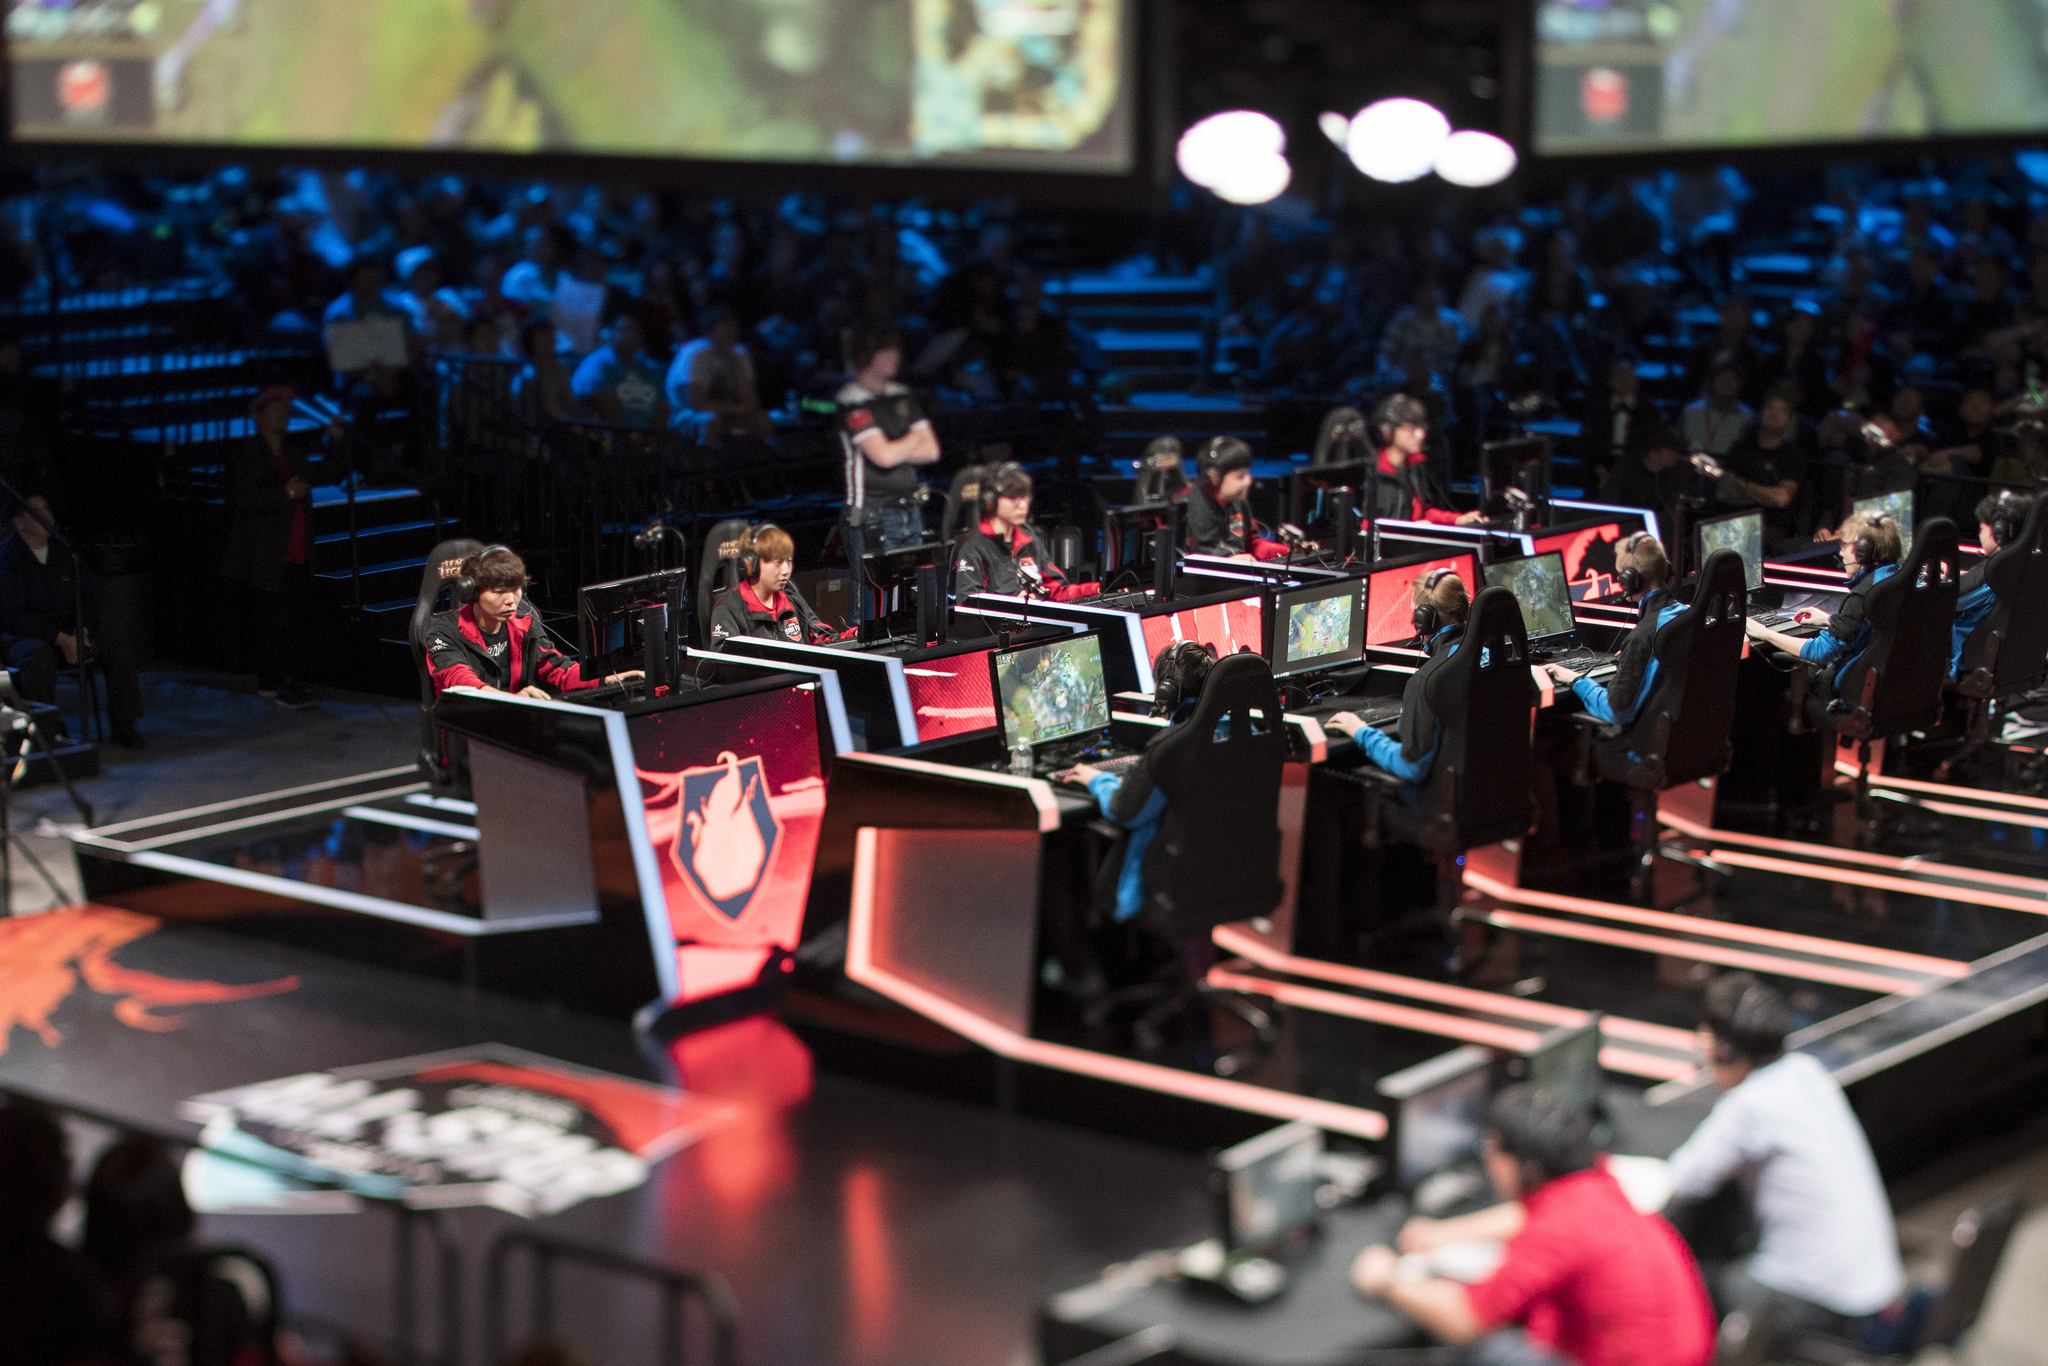 Team Fire competes at the 2015 League of Legends world championships.